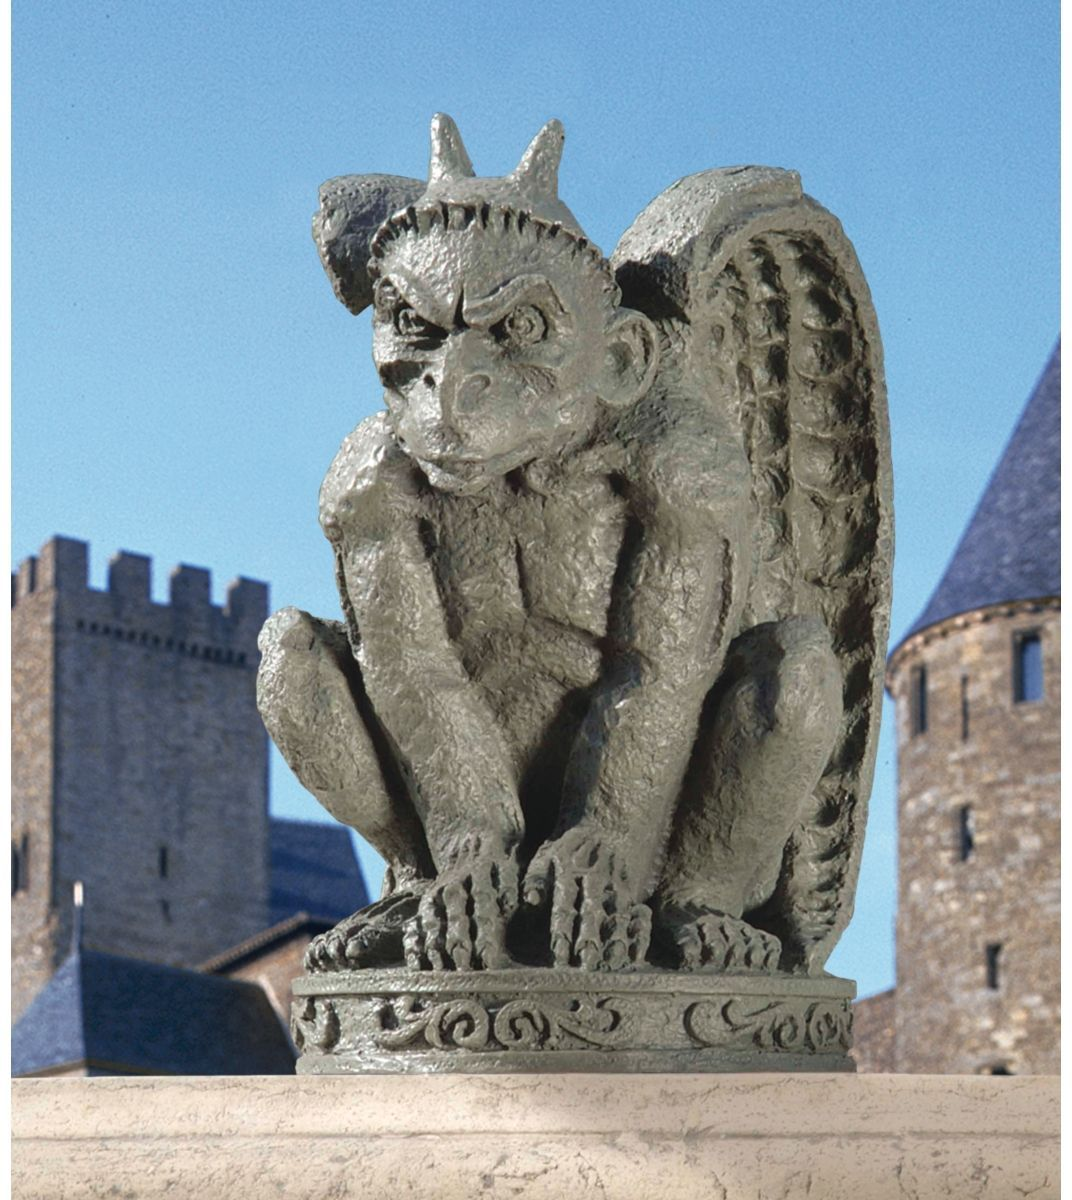 Tall horns spiny claws menacing face muscular gothic gargoyle images of gargoyles water fountain claws menacing face muscular gothic gargoyle garden biocorpaavc Images